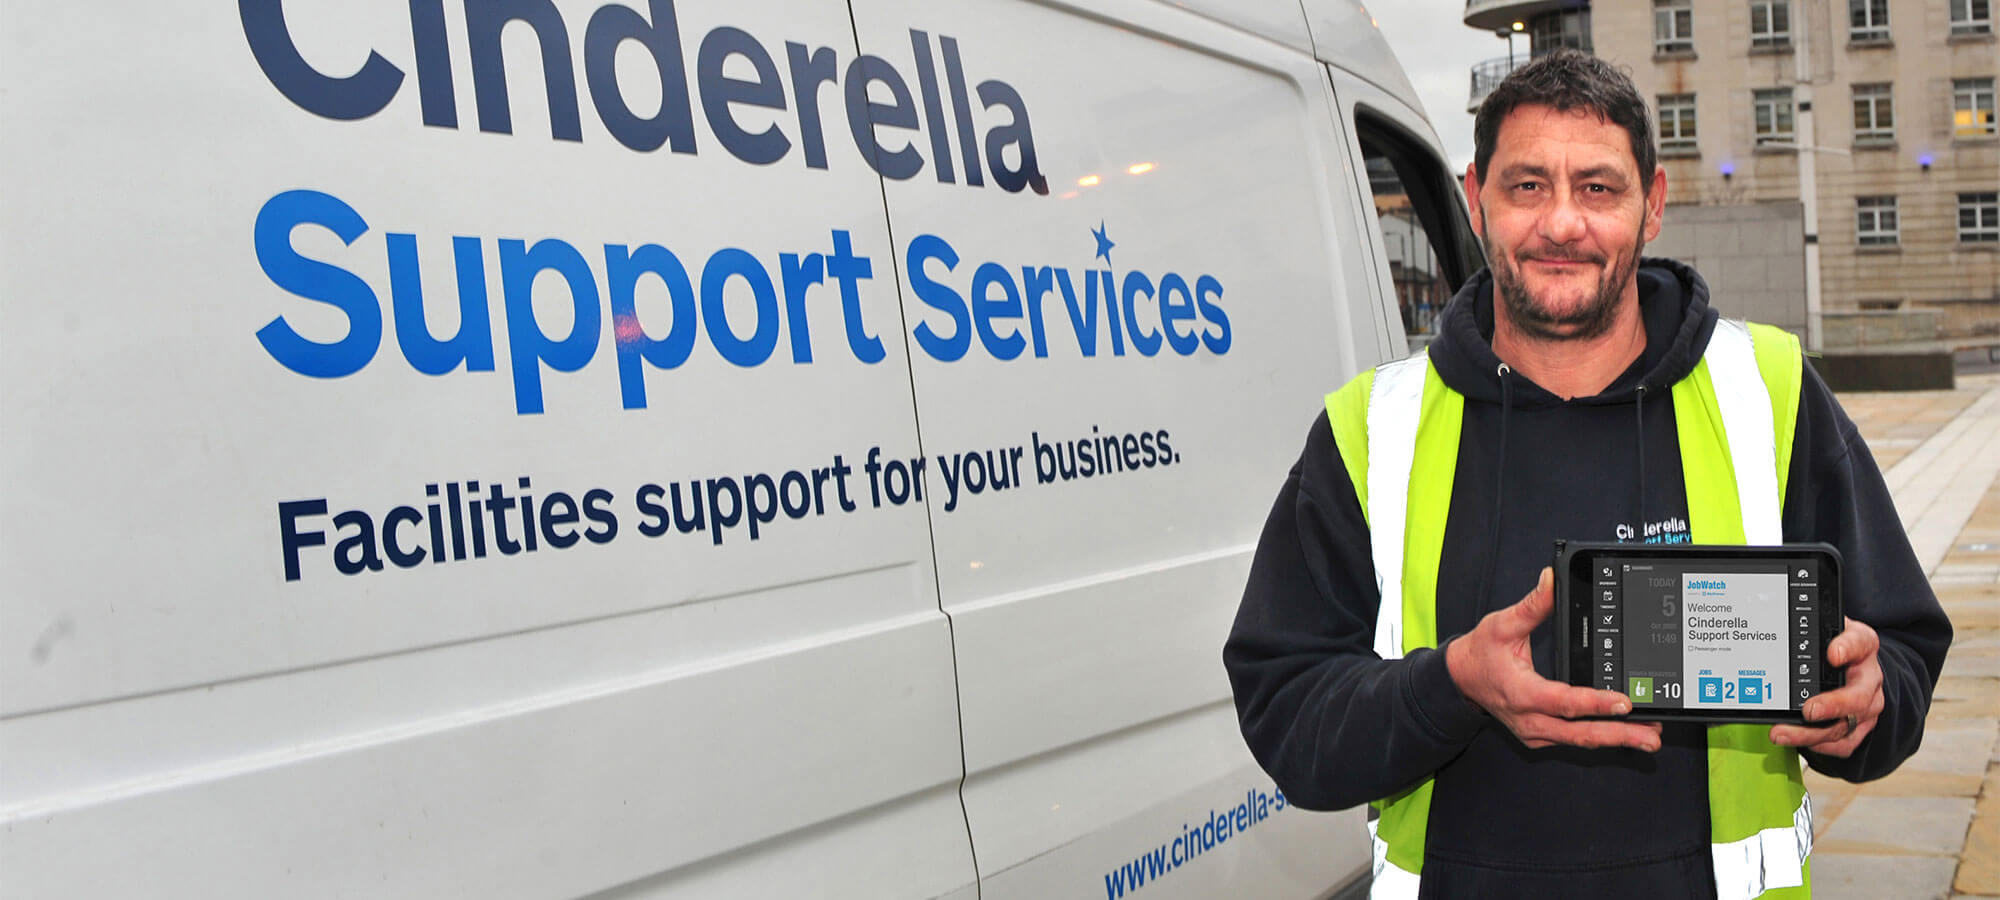 Cinderrella Support Services using BigChange